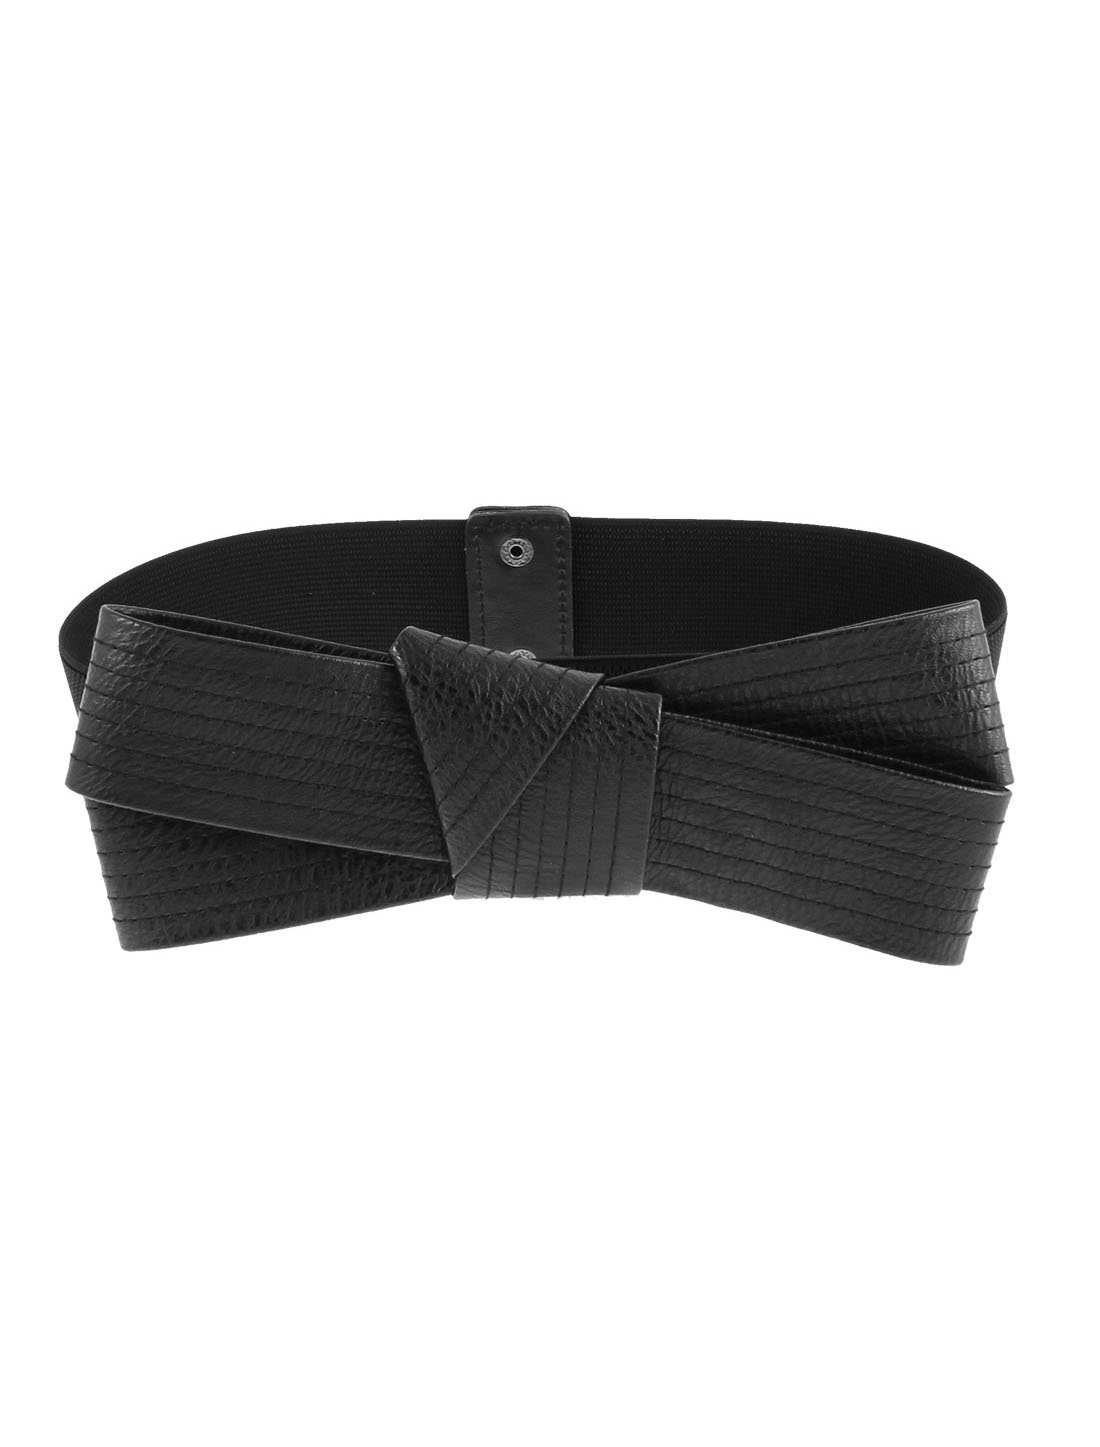 Bowknot Design Press Button Elastic Corset Waist Cinch Belt Band 75cm Length